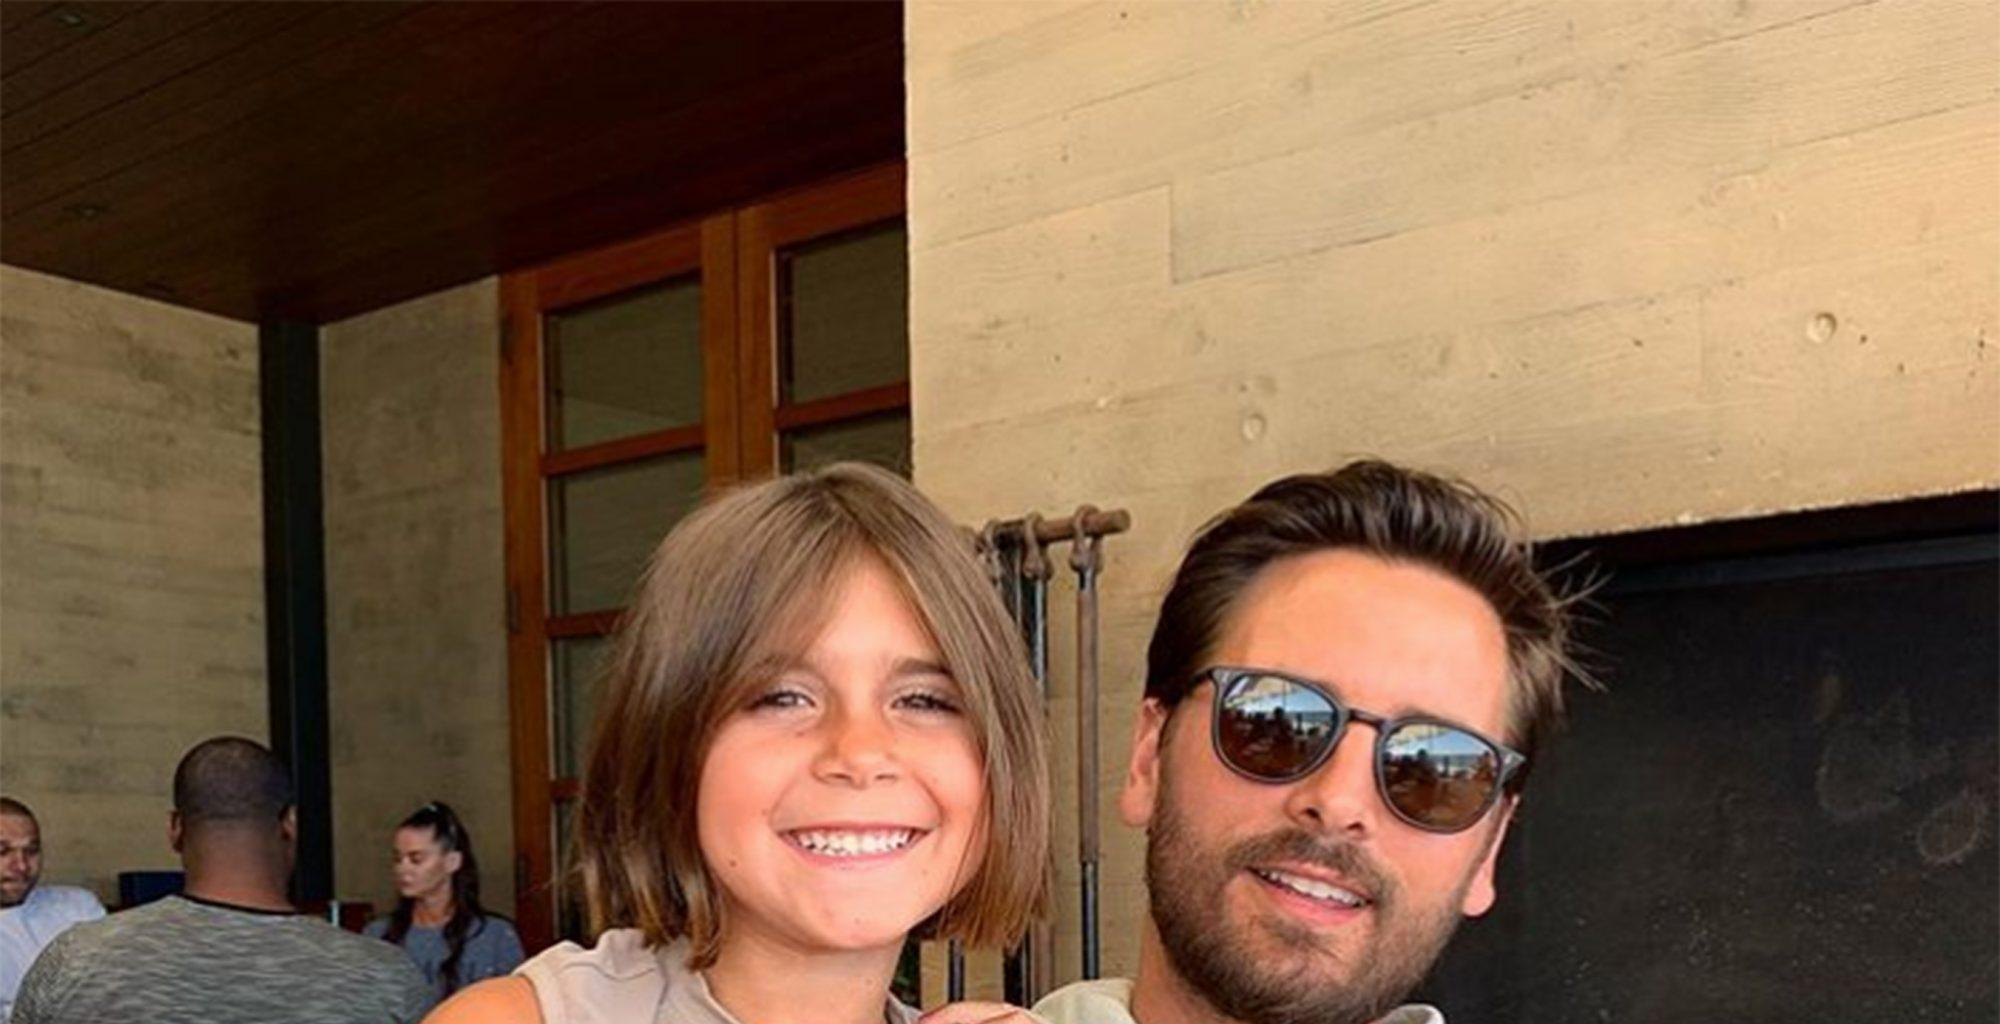 Scott Disick's Latest Pic Of Daughter Penelope Has The Internet Very Confused - So Who's 'Megan?'